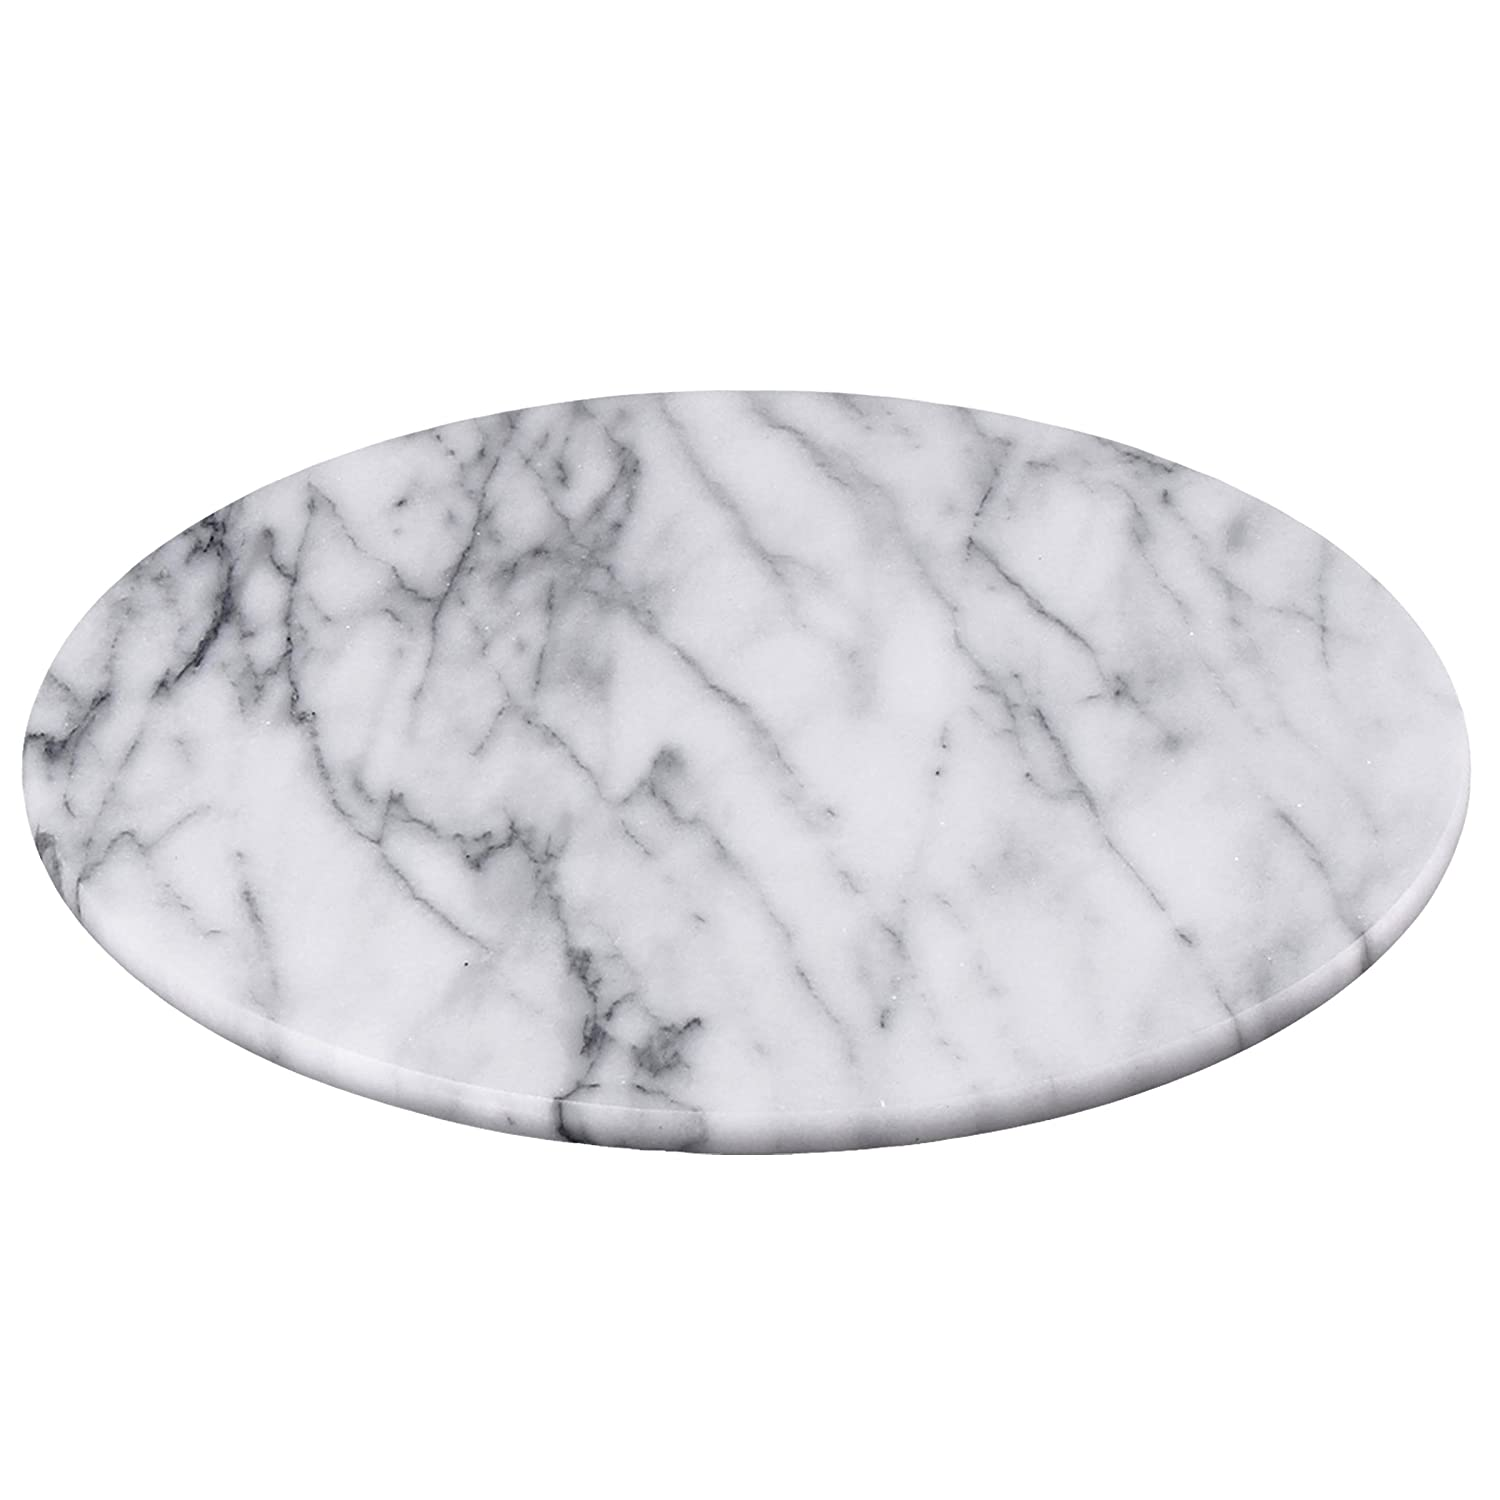 """Creative Home 74722 Natural Marble 12"""" Diam. Round Board Cheese Serving Plate, x 1"""" H, Off-White"""